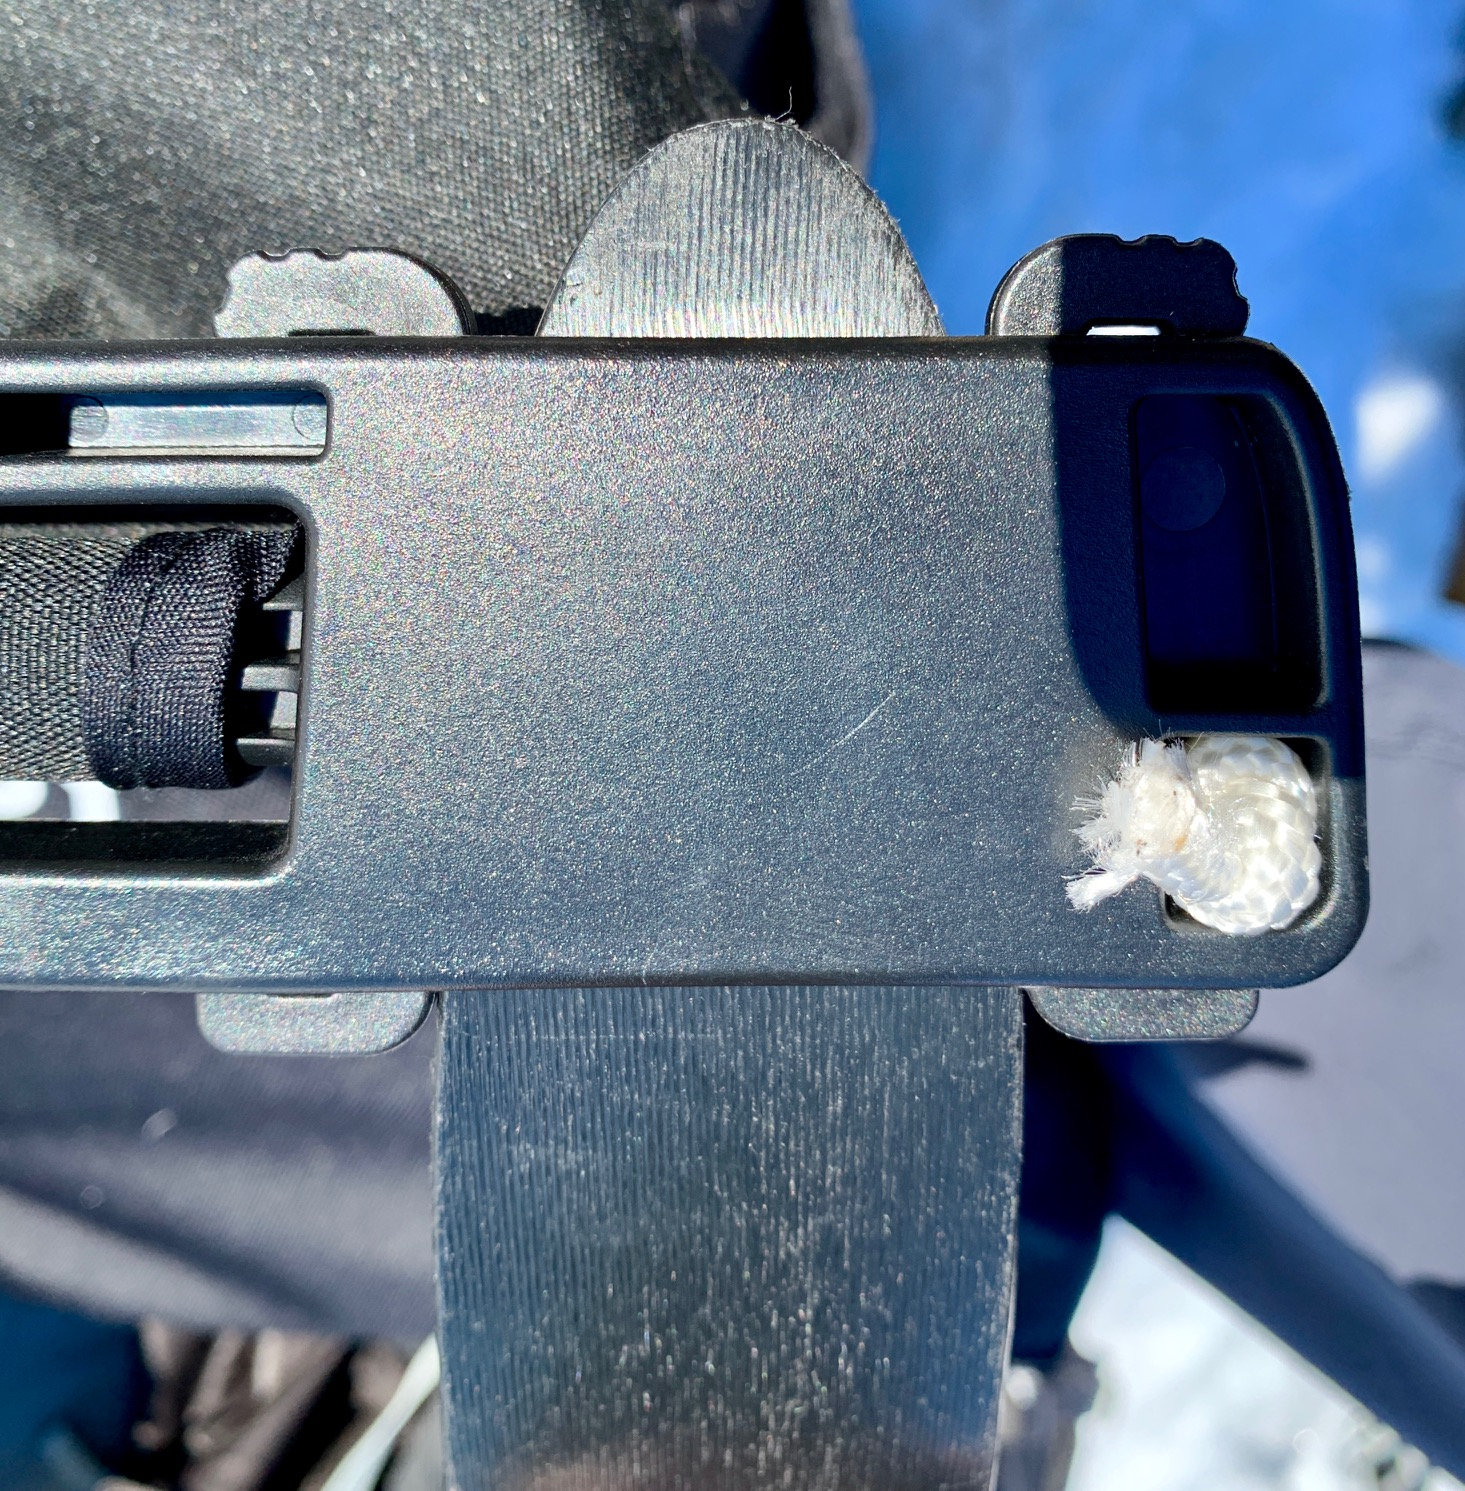 Example of mounting clips on skis